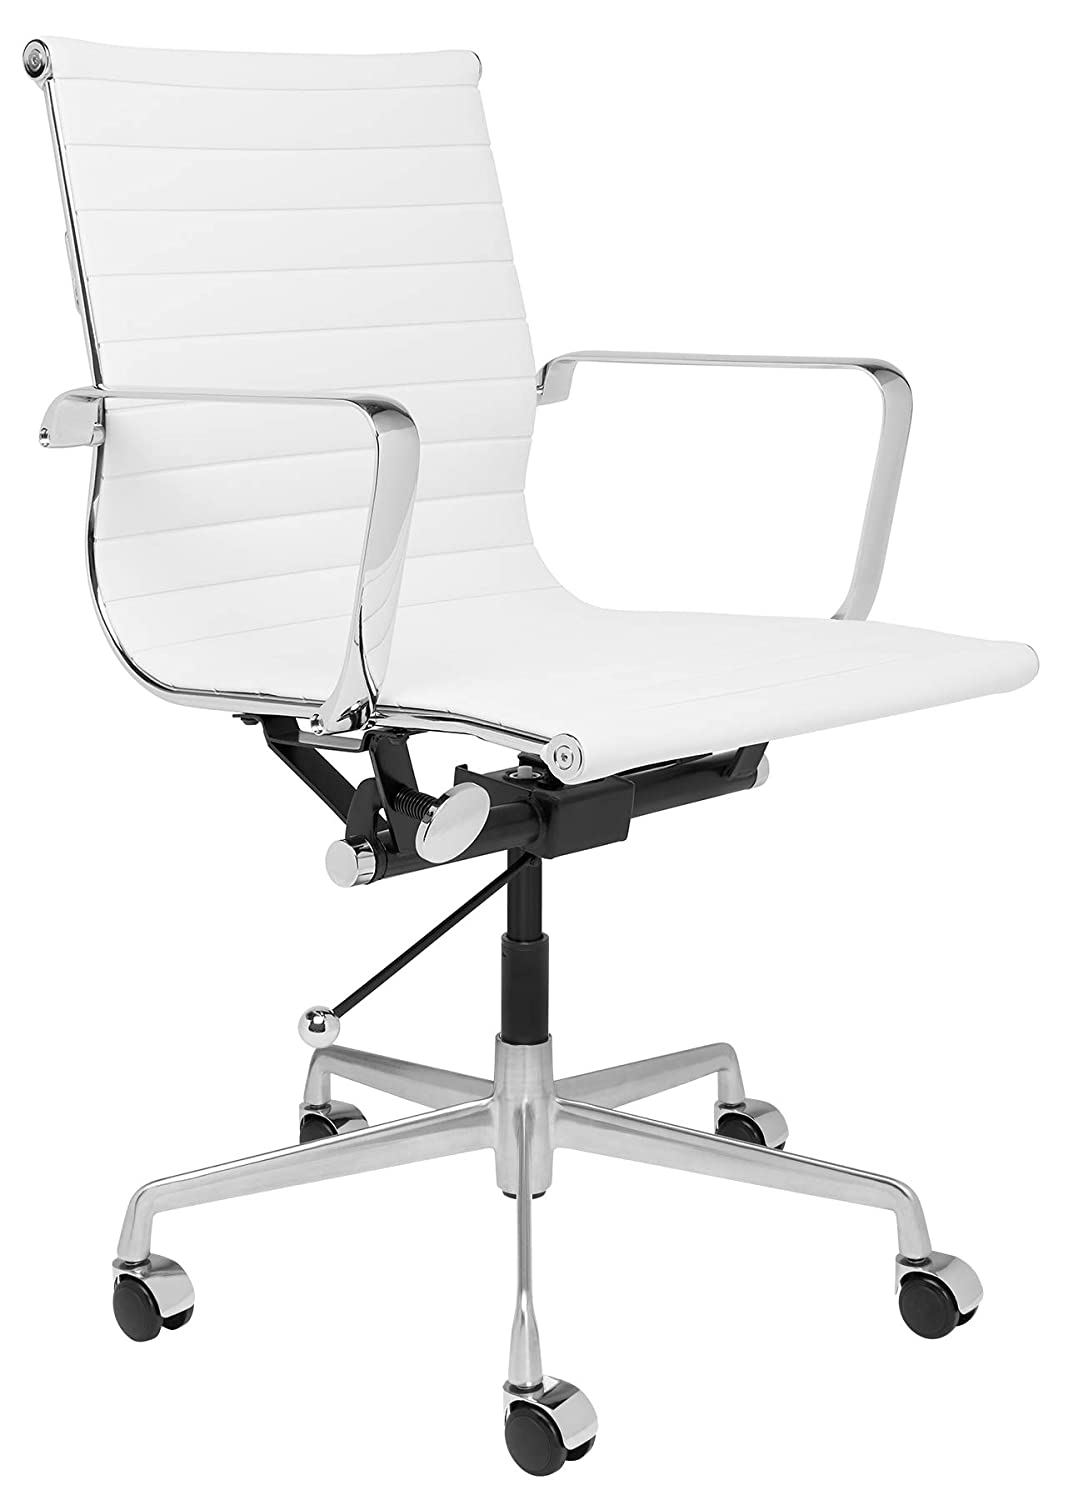 SOHO Mid Century Modern Ribbed Management Office Chair (White)